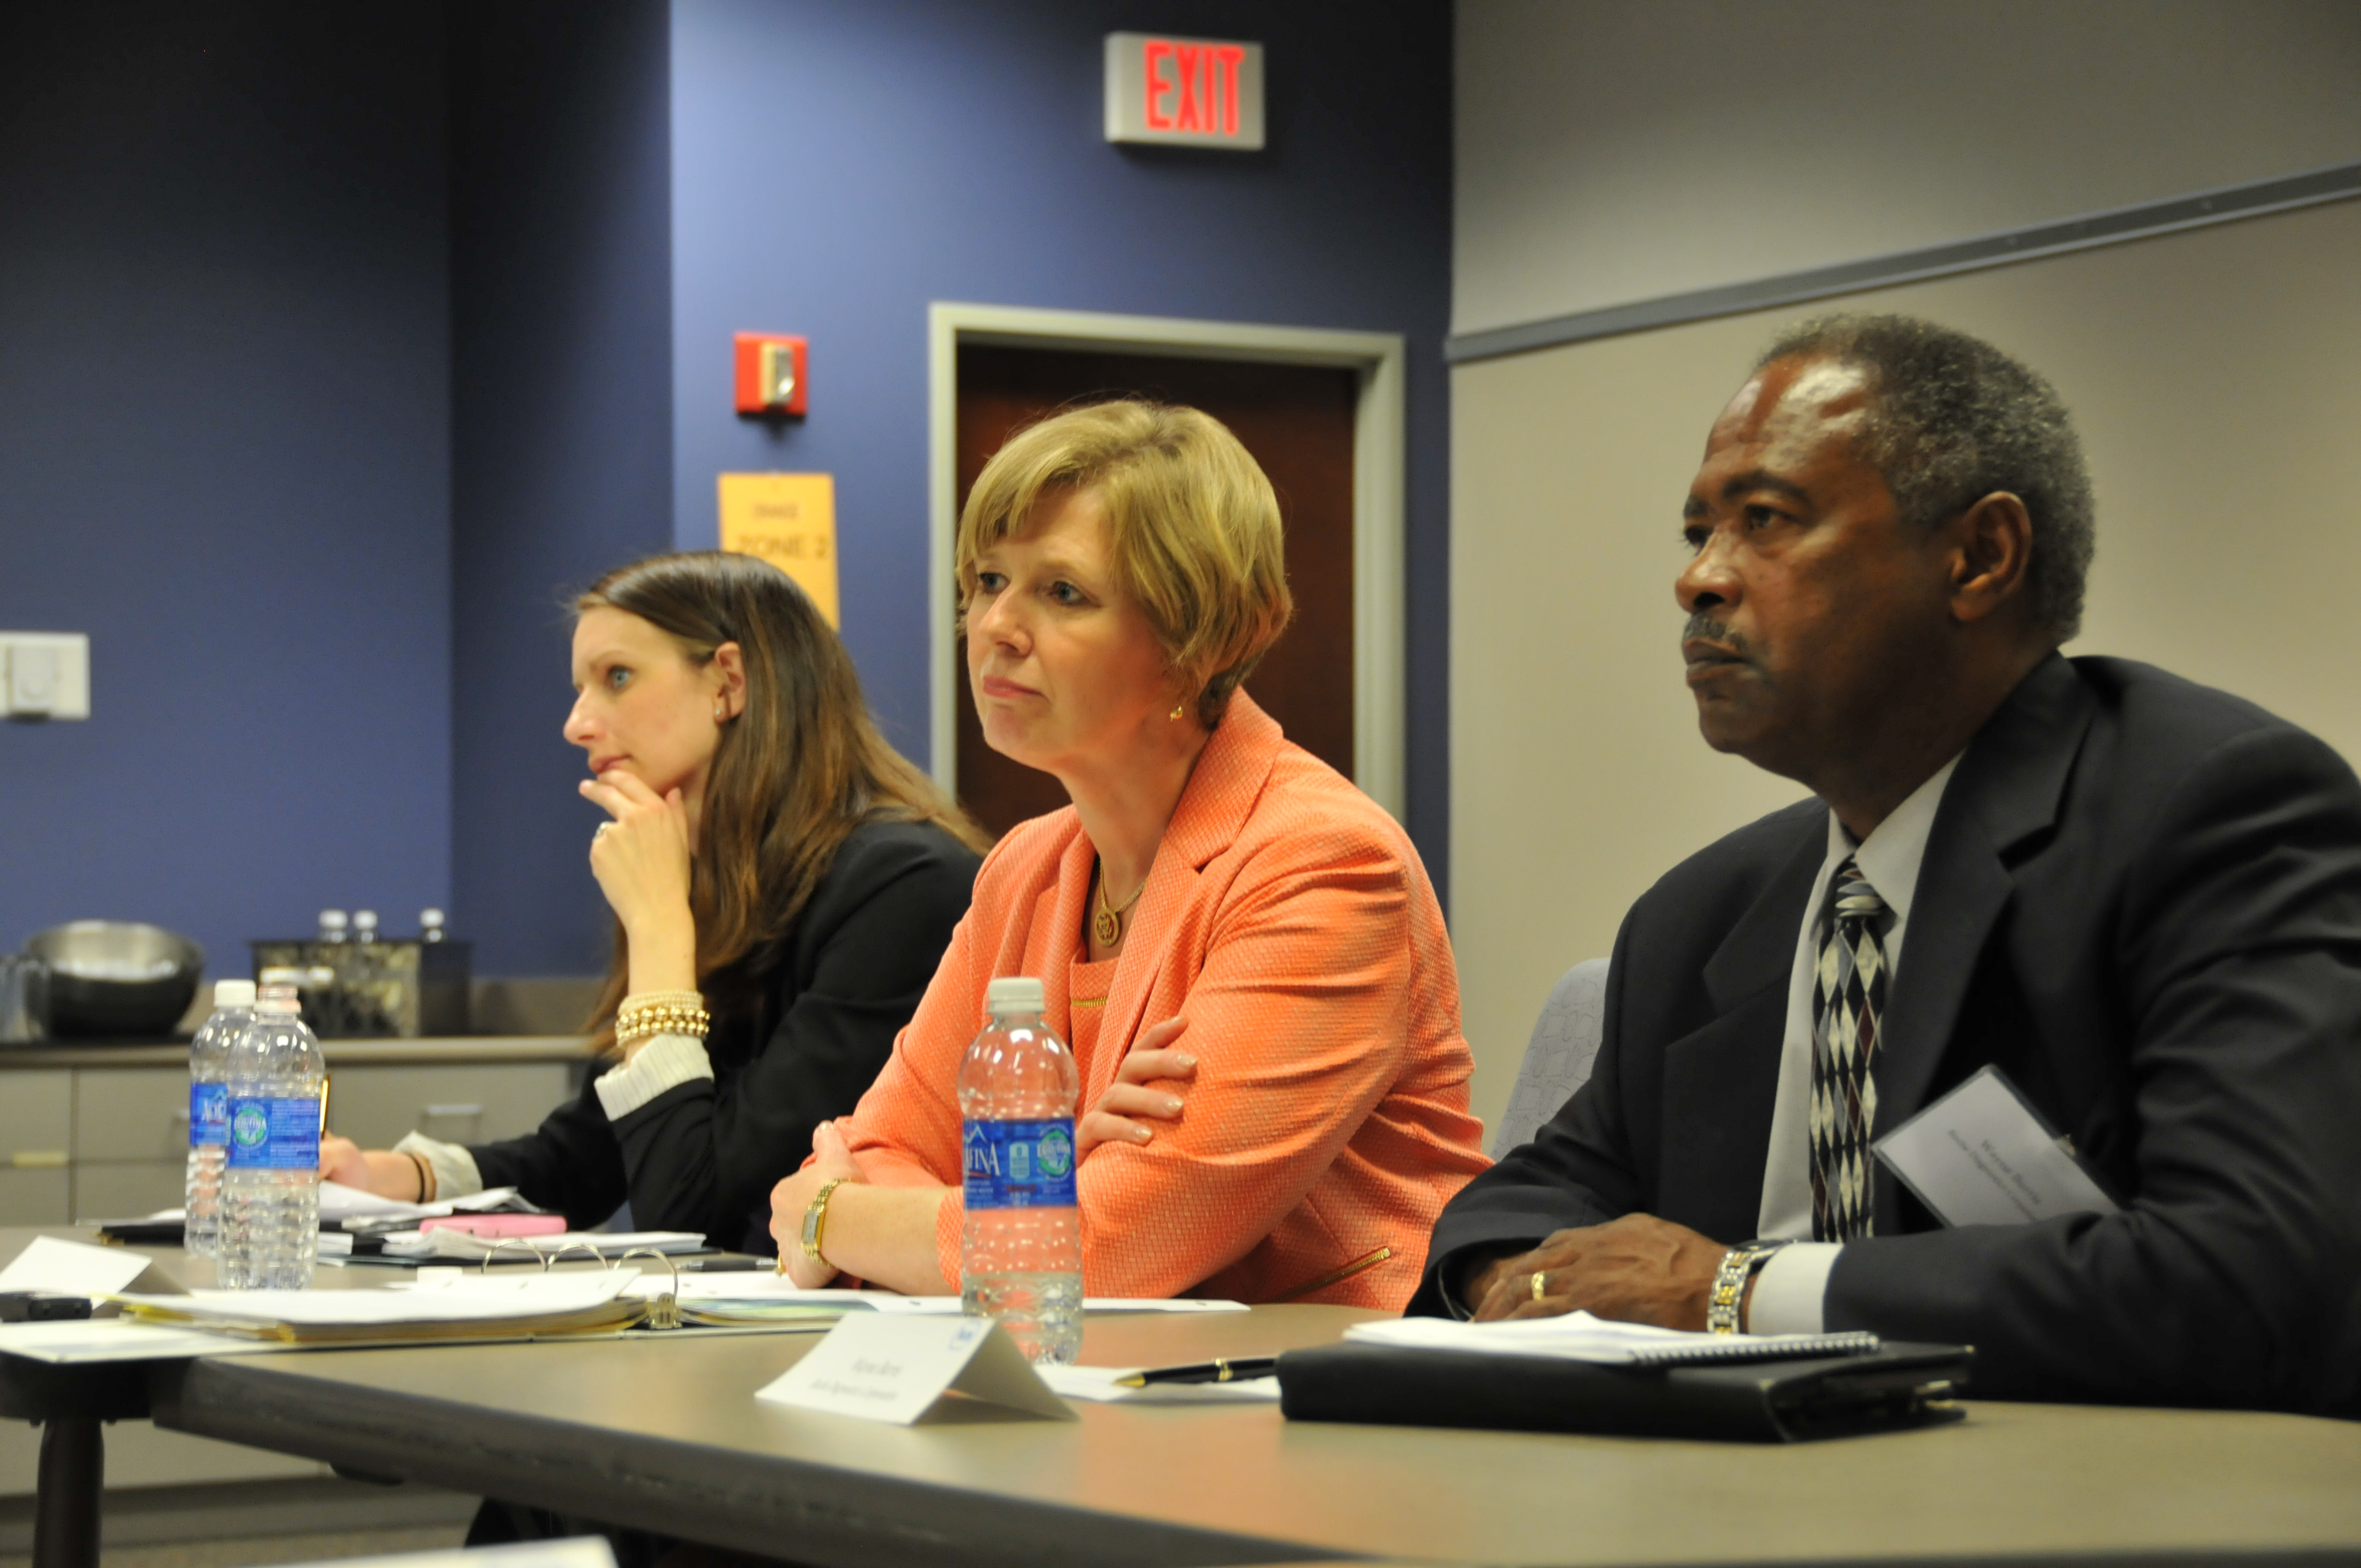 Fifth District U.S. Rep. Susan Brooks took part in a 21st Century Cures listening session at Roche Diagnostics on Aug. 7. (Submitted photo)